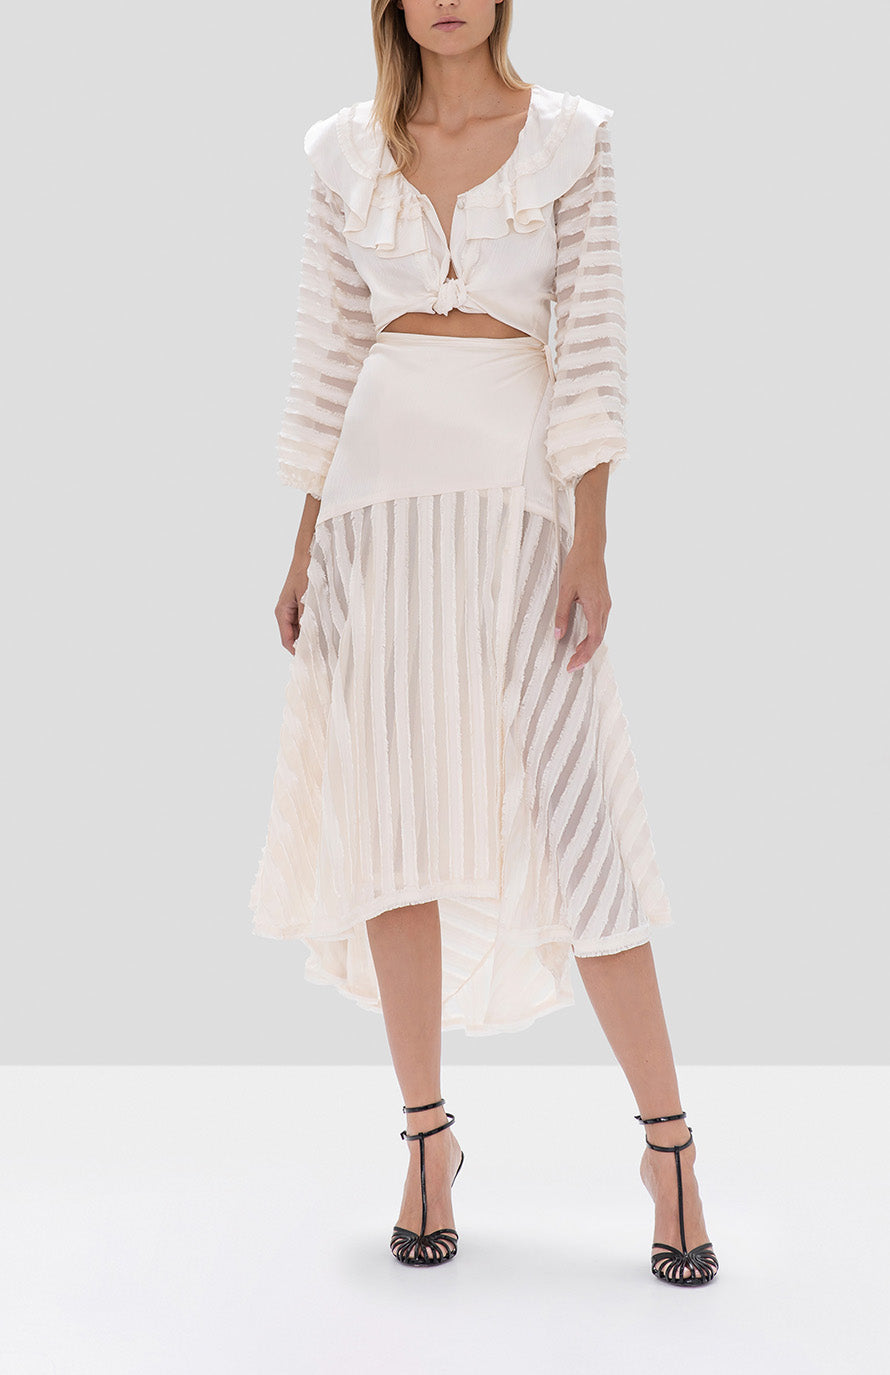 Alexis Melata Top and Danos Skirt Off White from the Fall Winter 2019 Ready To Wear Collection - Rear View